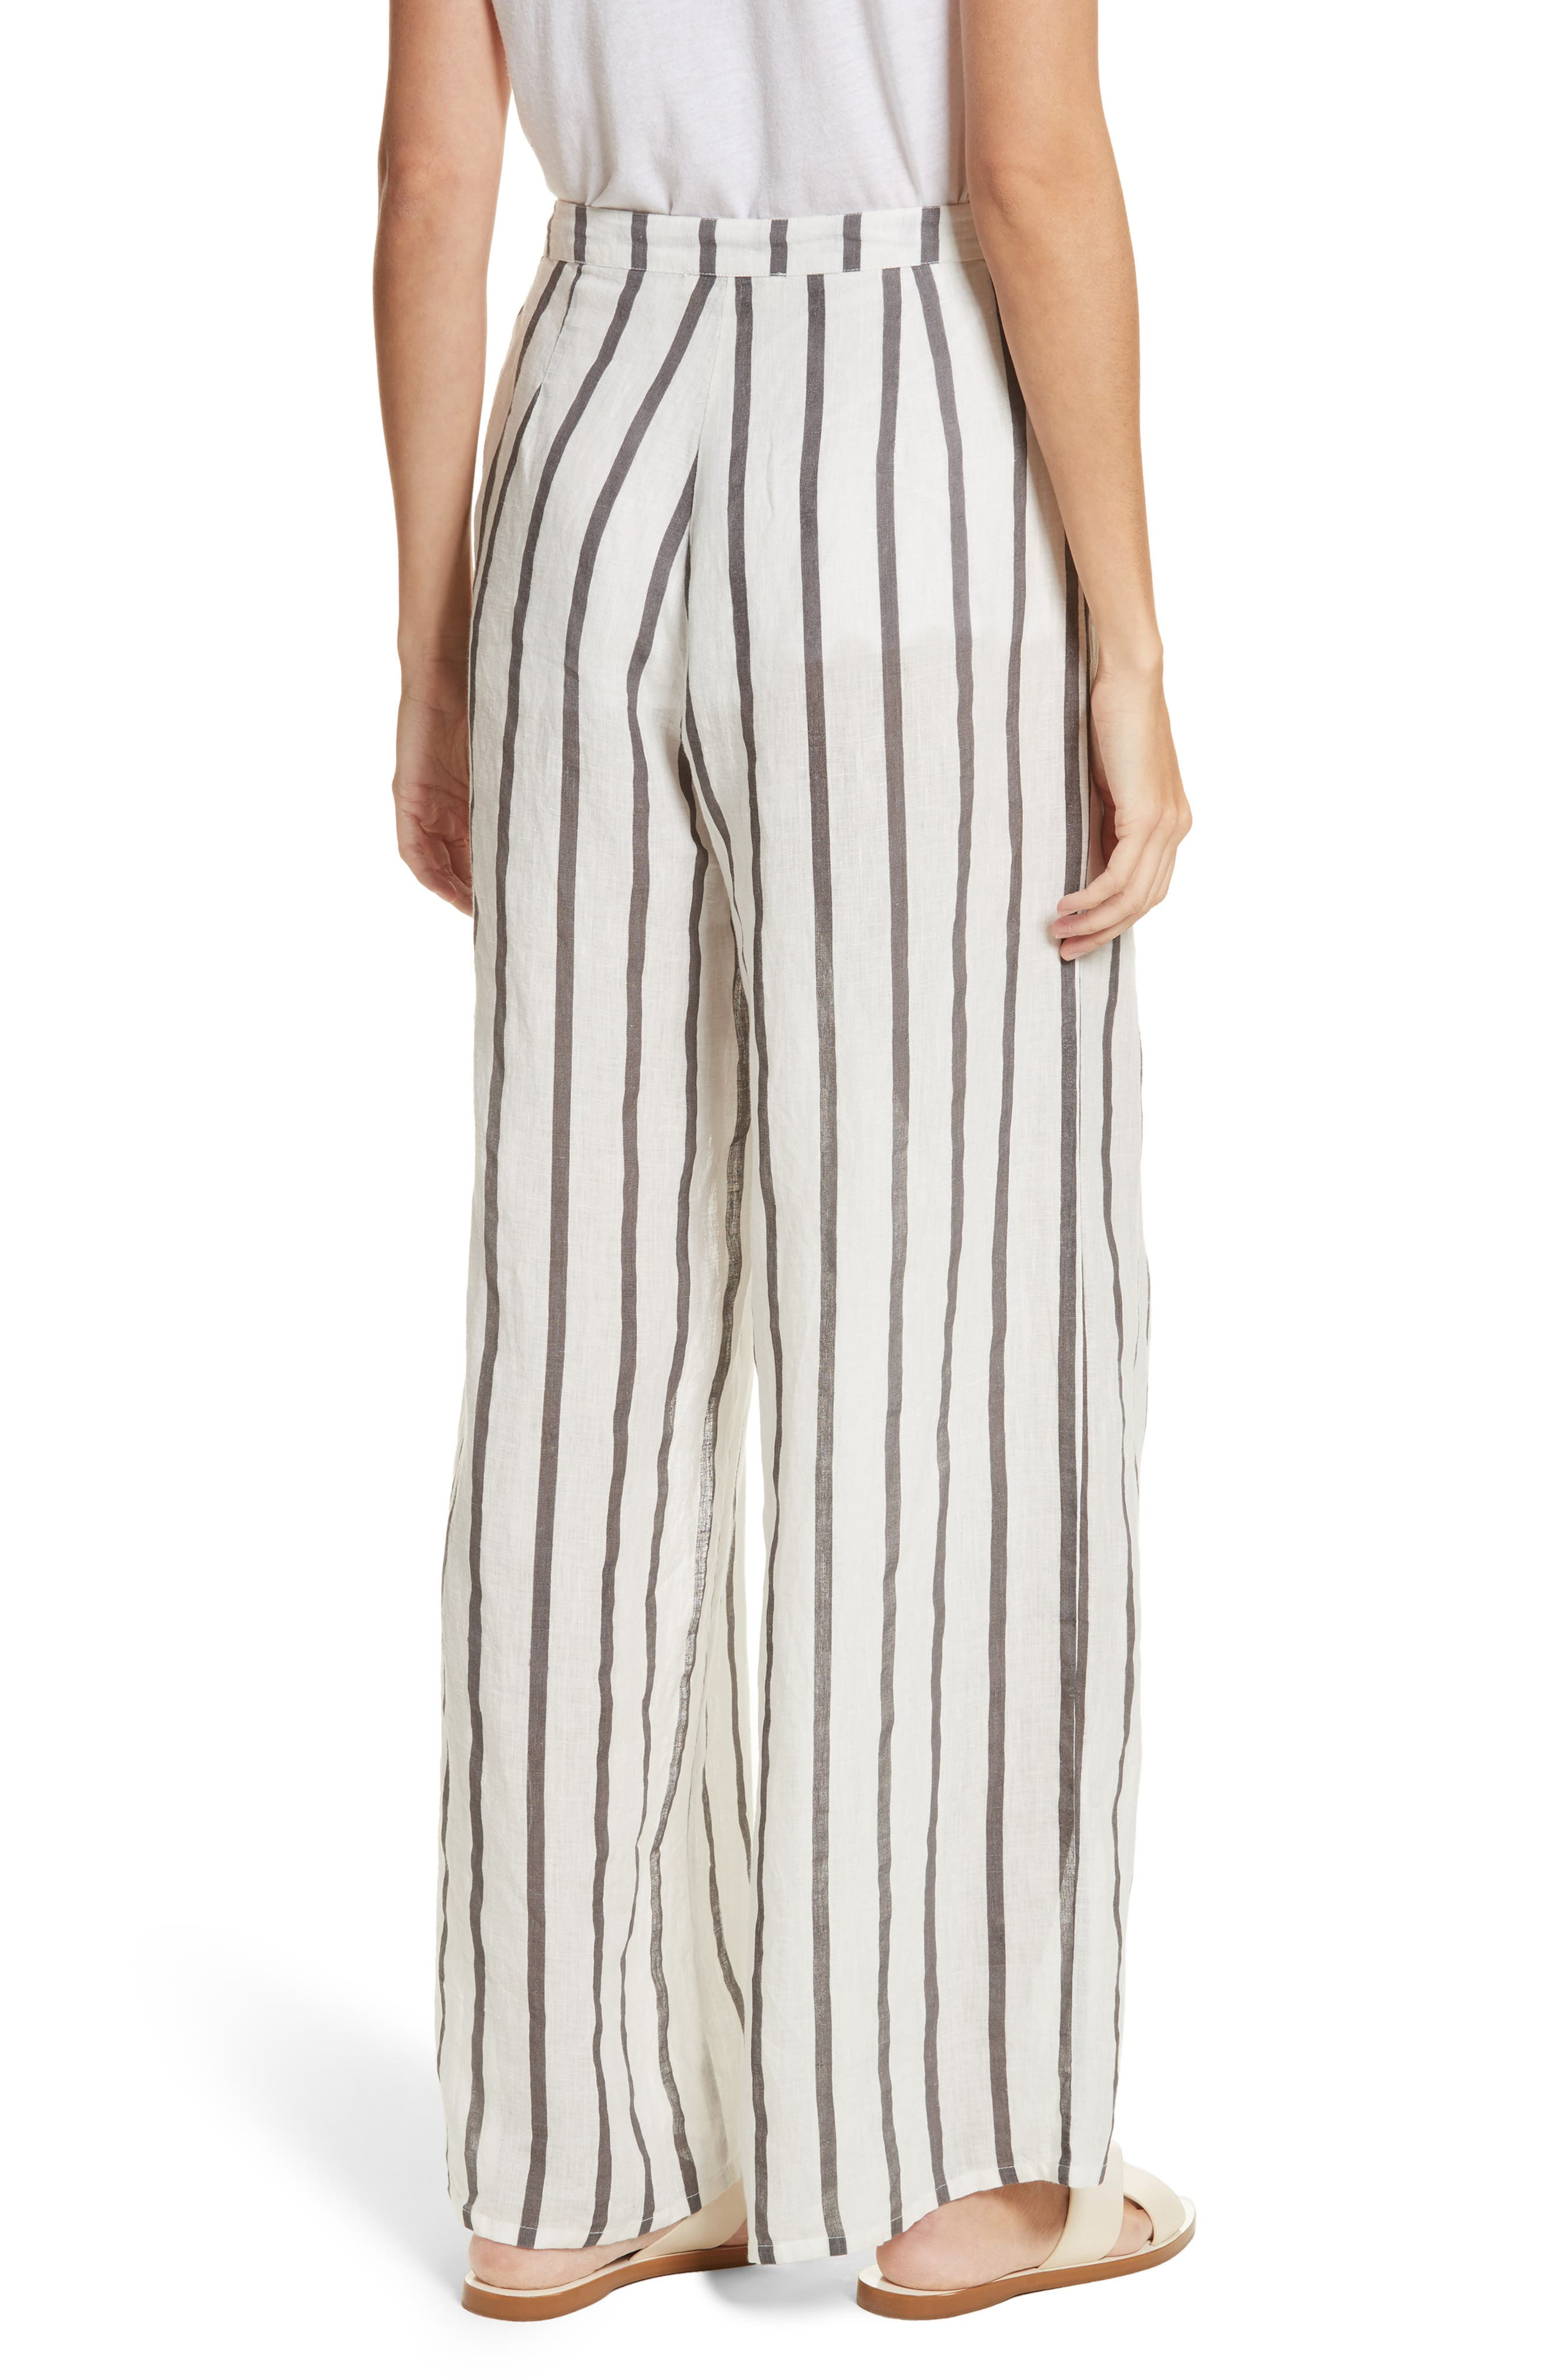 Andrea Embroidered Wide Leg Pants,                             Alternate thumbnail 2, color,                             Off White/ Grey